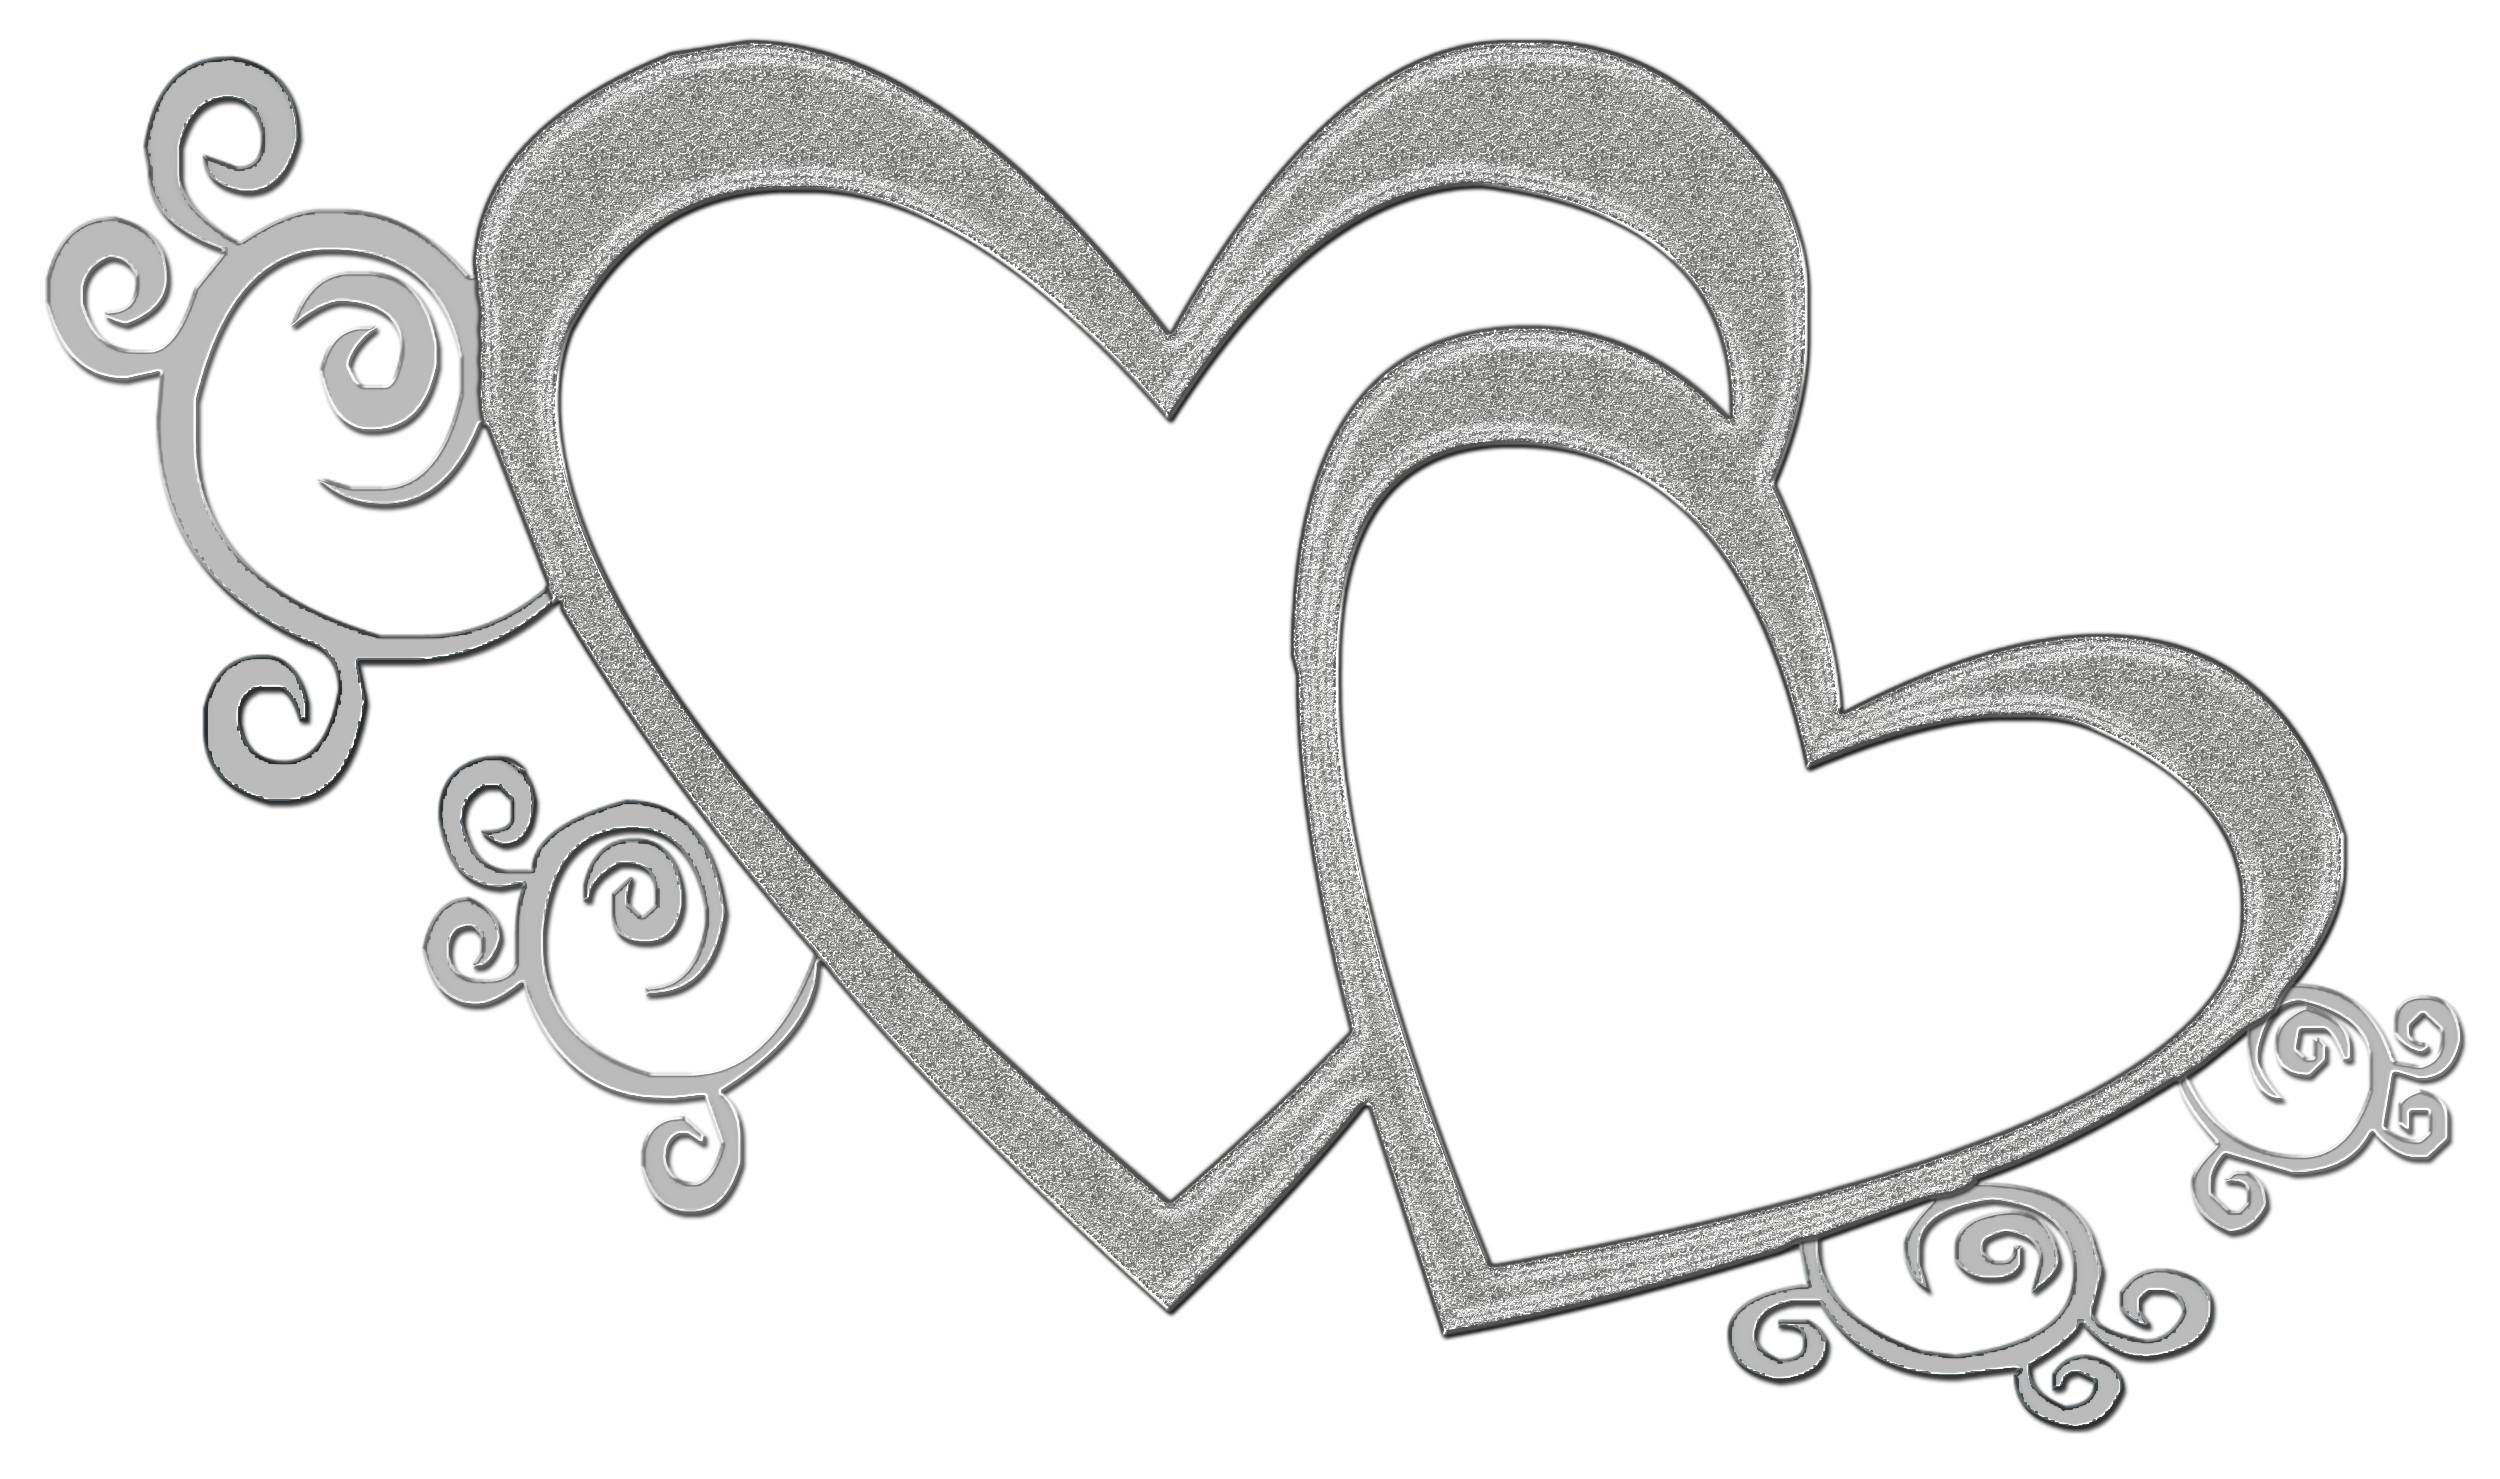 Sliver Double Heart PNG by Princessdawn755 on DeviantArt